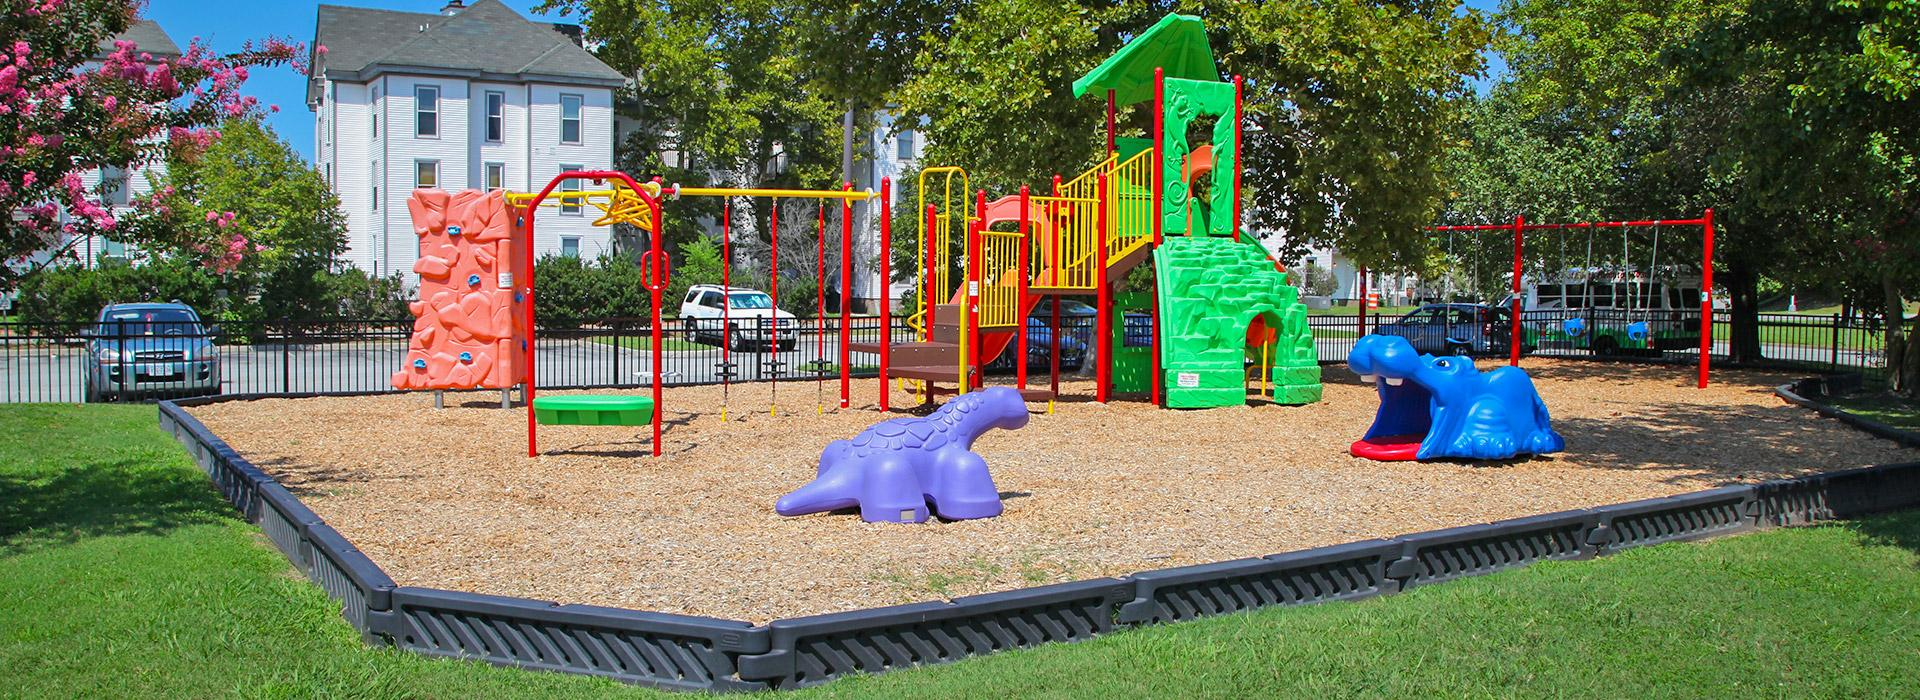 Effingham Street Family YMCA playground